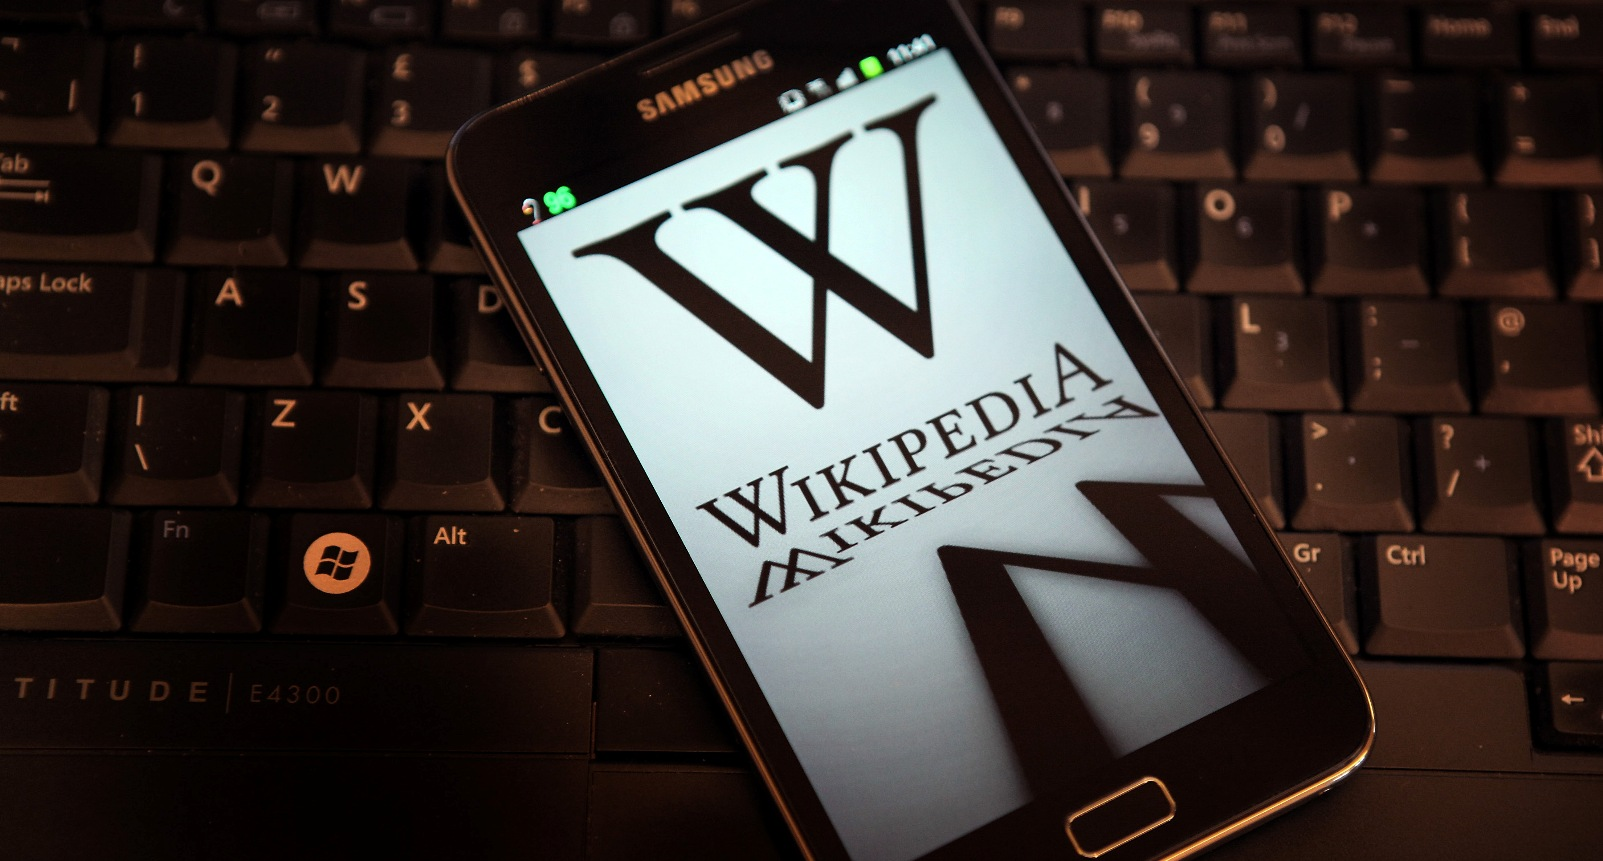 Wikipedia's testing a new sign-up page to entice would-be Wikipedians